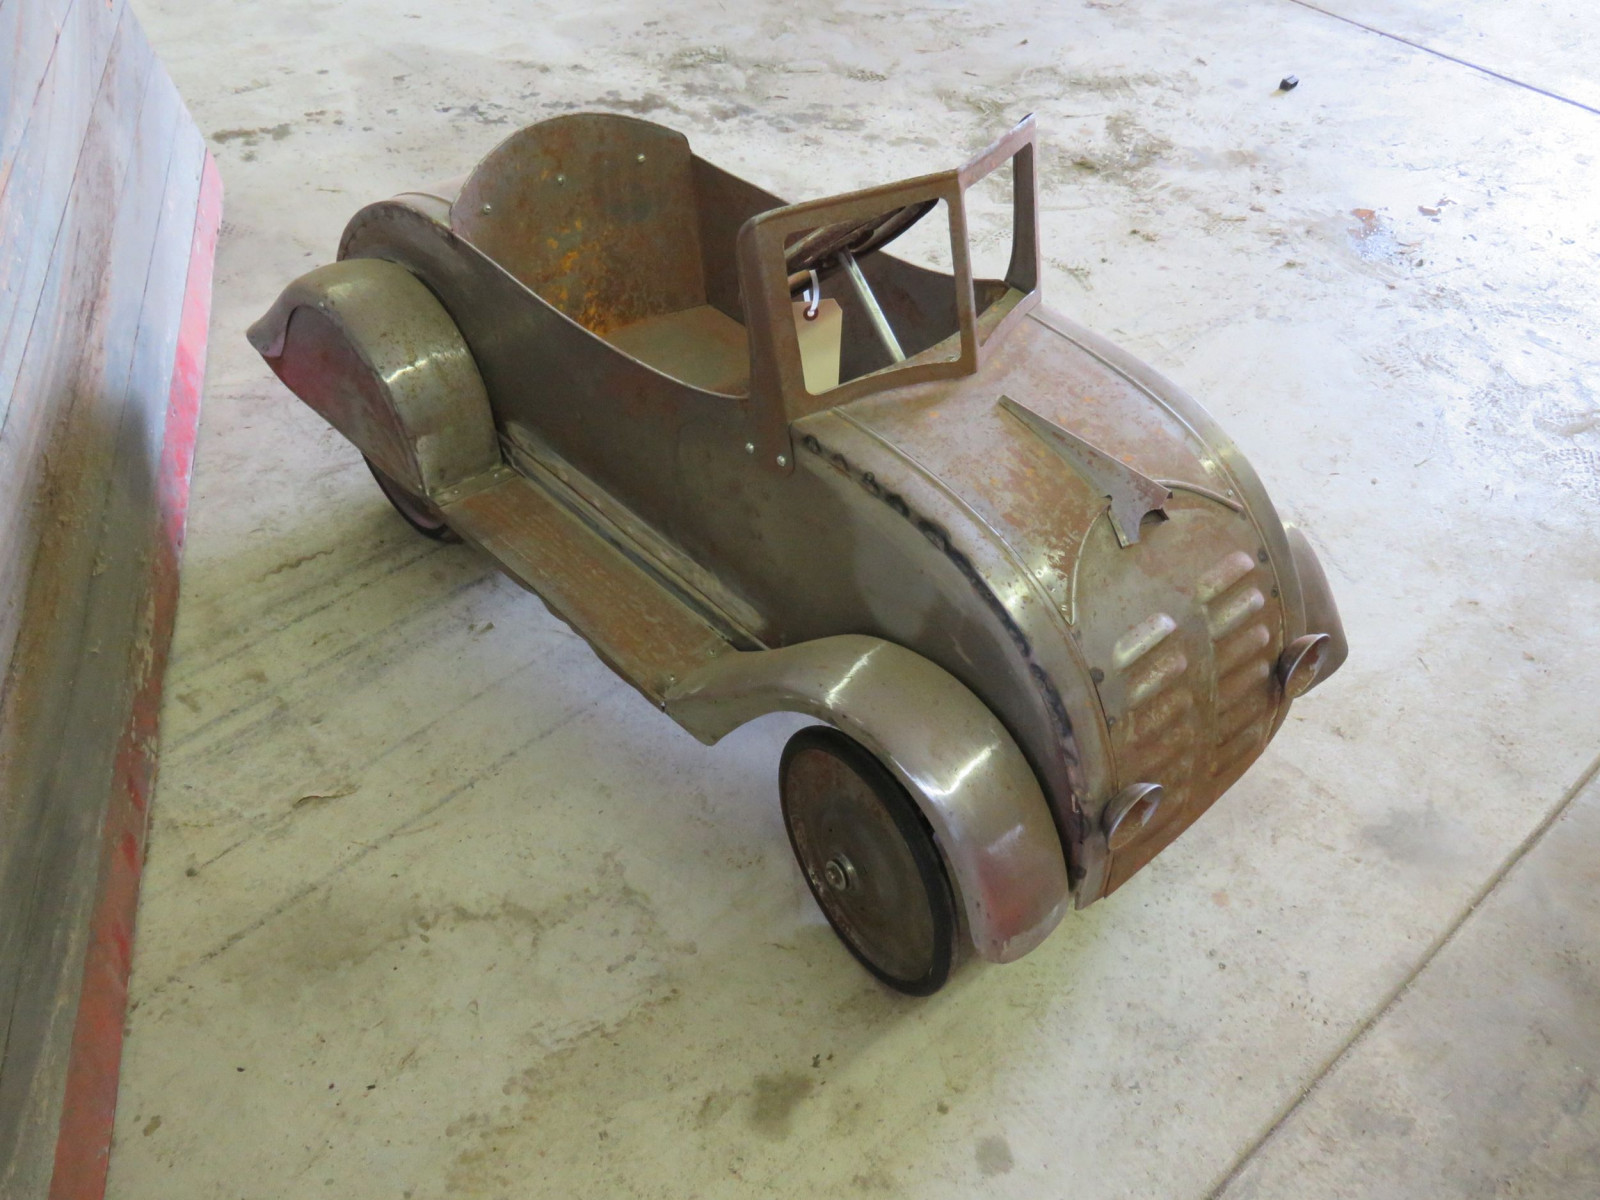 Ornate 1930's Garton DeSoto Airflow Pedal Car for Restore - Image 3